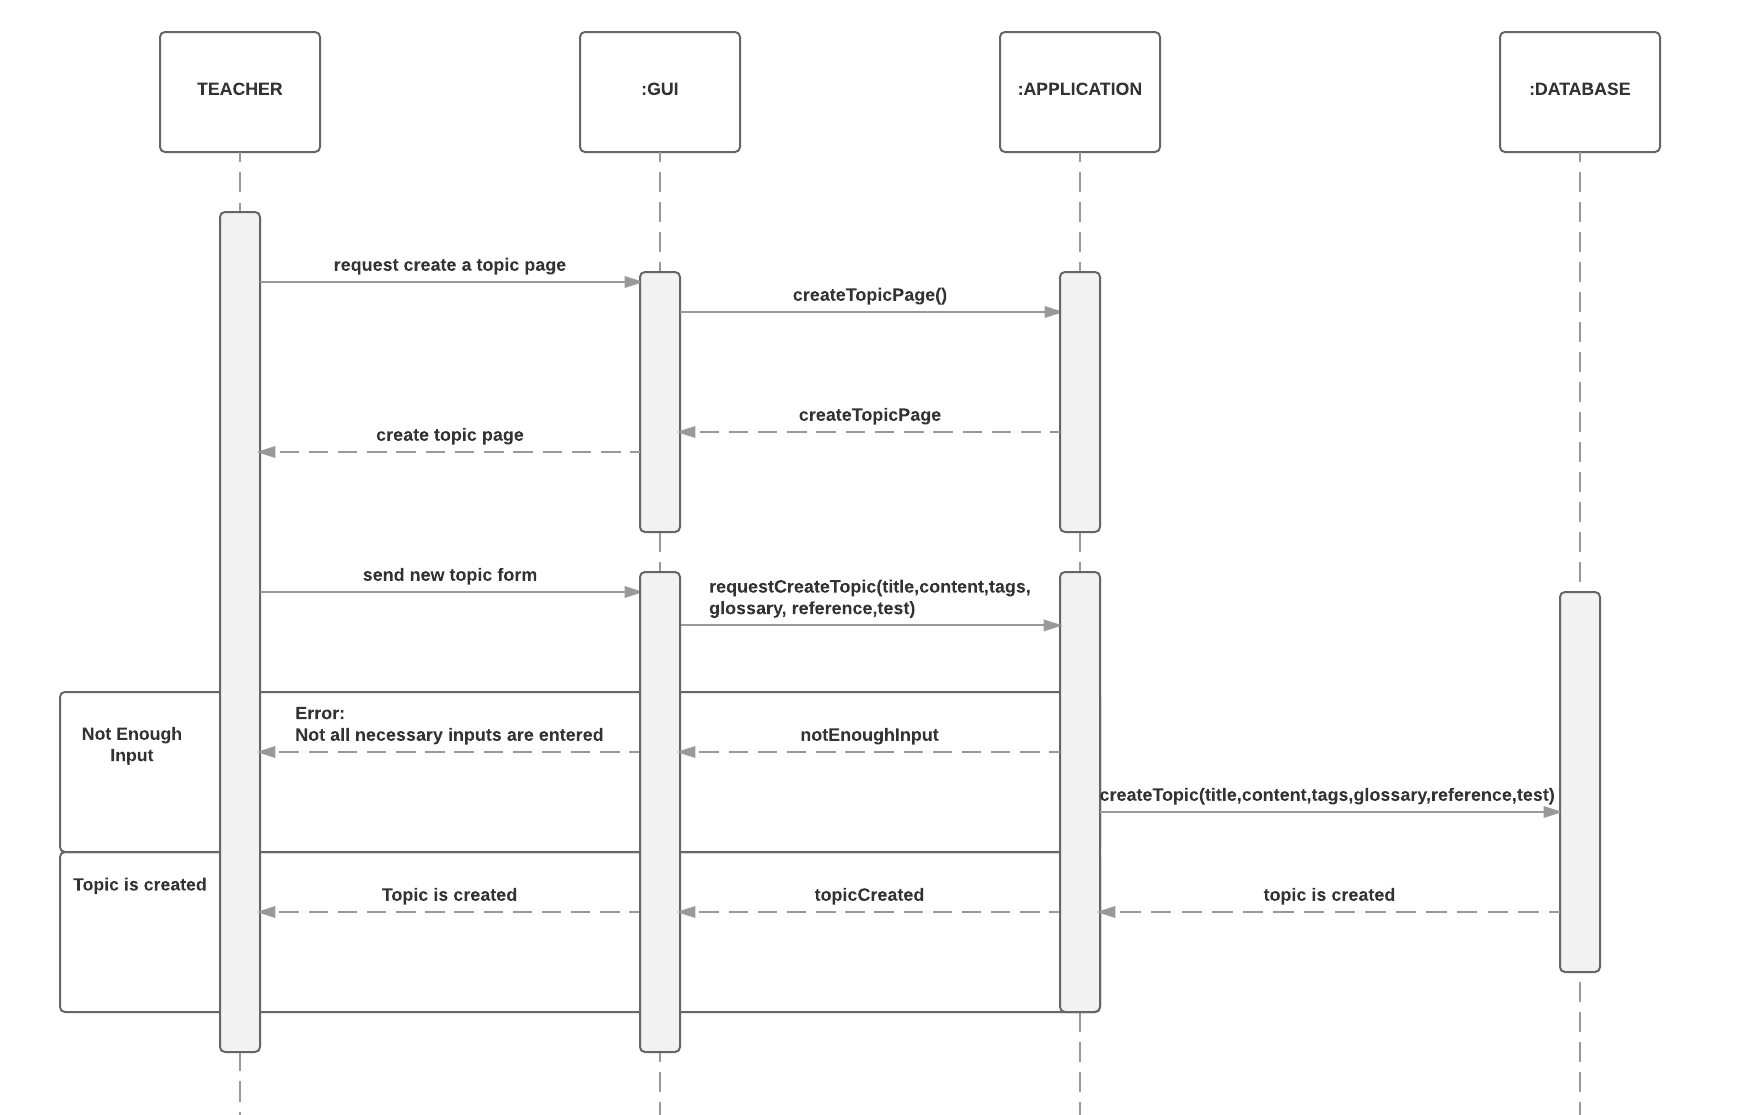 Sequence diagram bounswebounswe2016group8 wiki github if not all inputs are entered the user receives an error and the system doesnt create a new topic ccuart Gallery